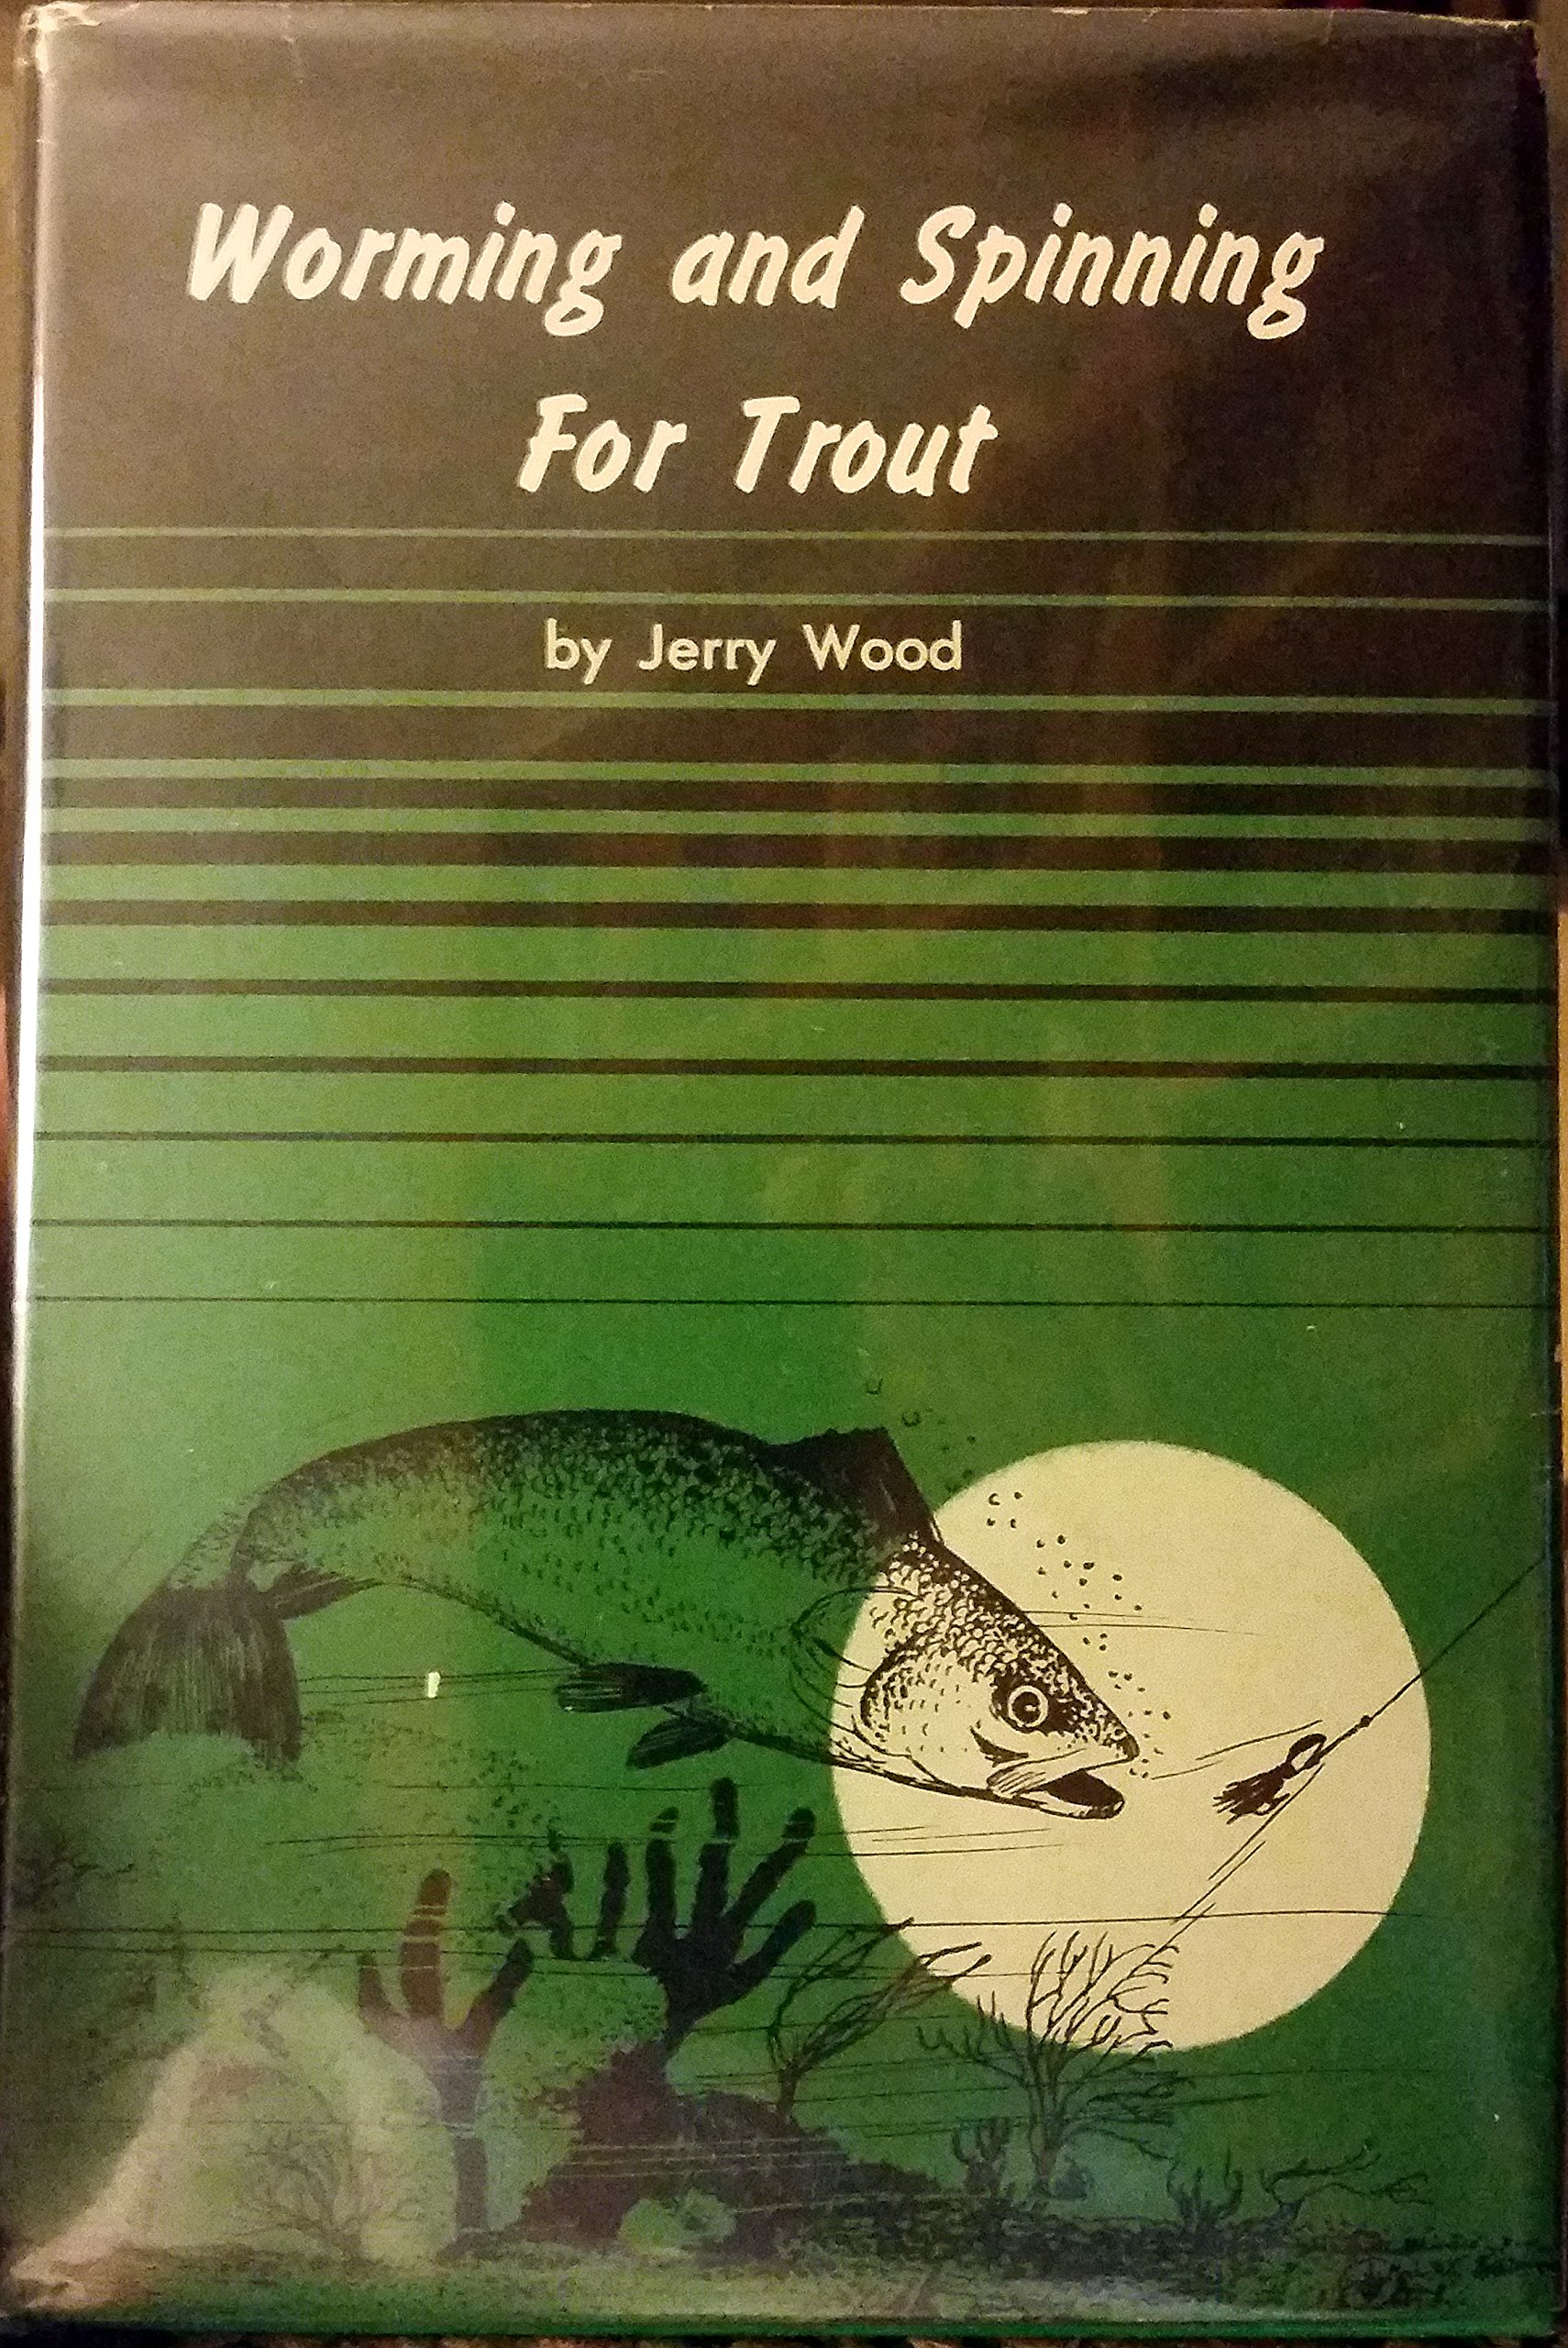 Worming and spinning for trout